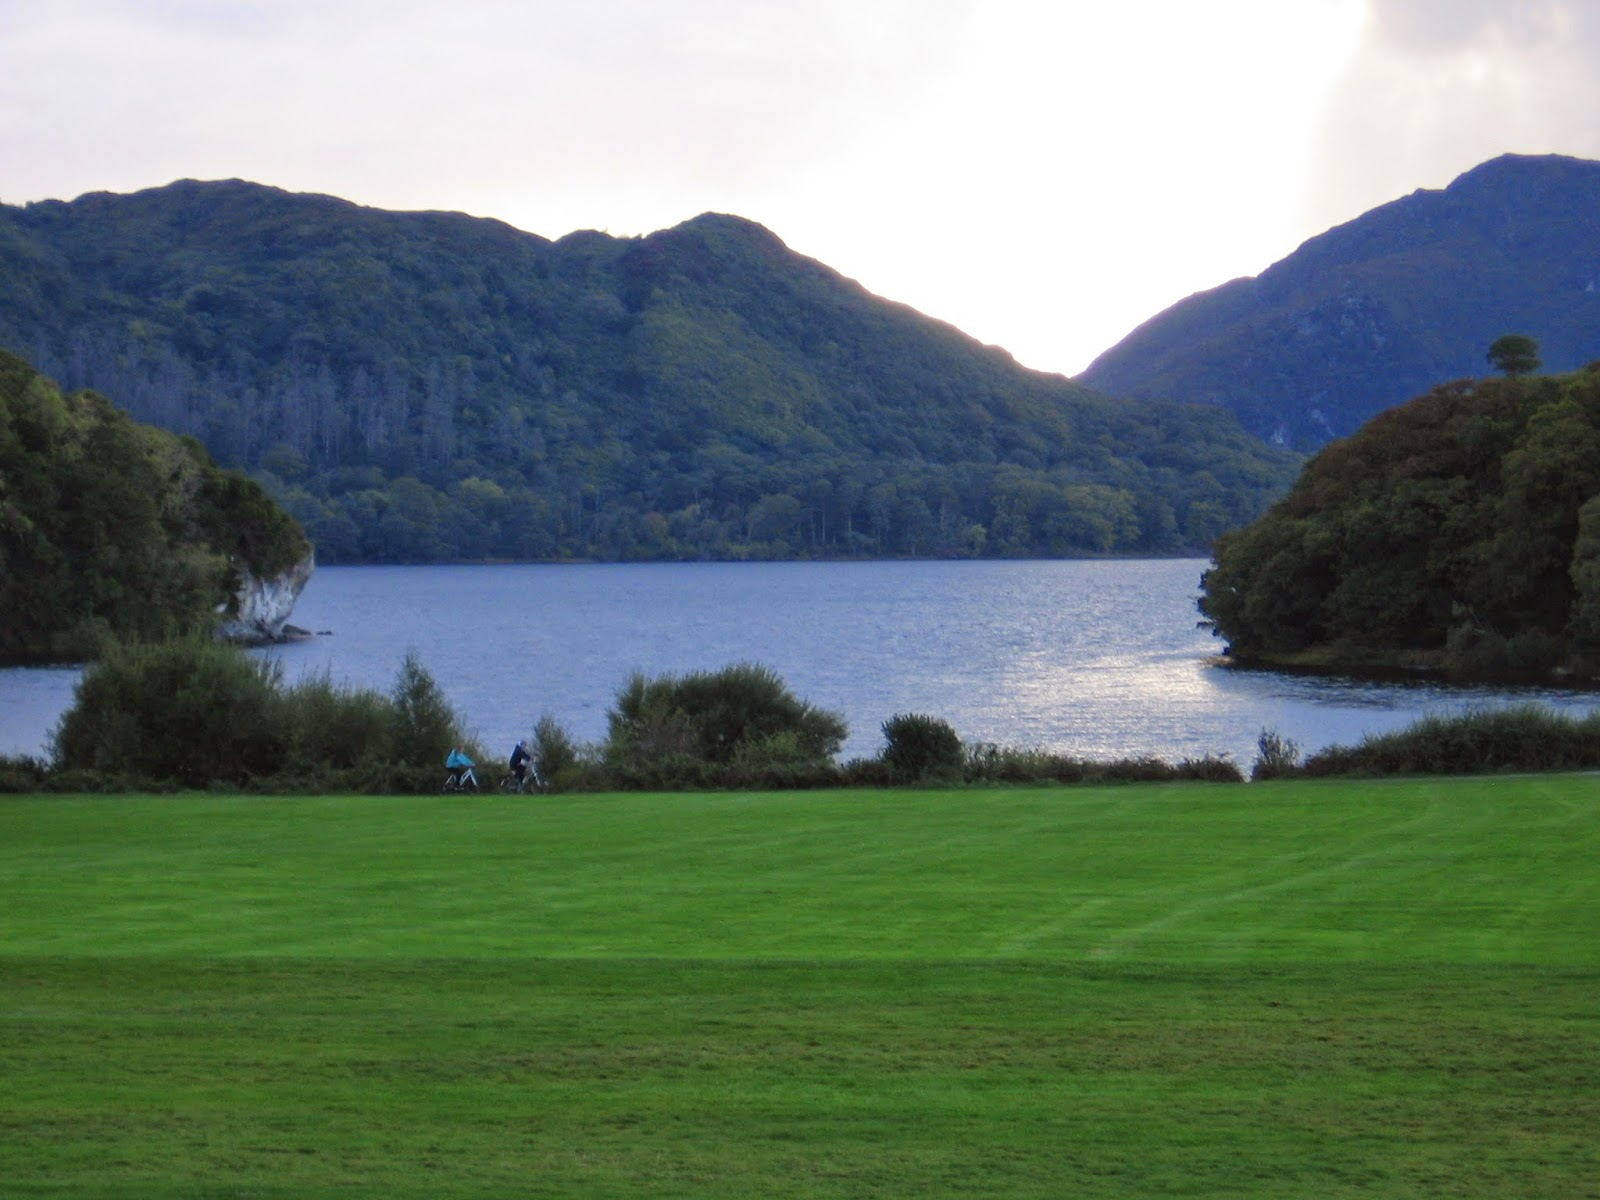 View at Muckross House in the Killarney National Park in County Kerry Ireland